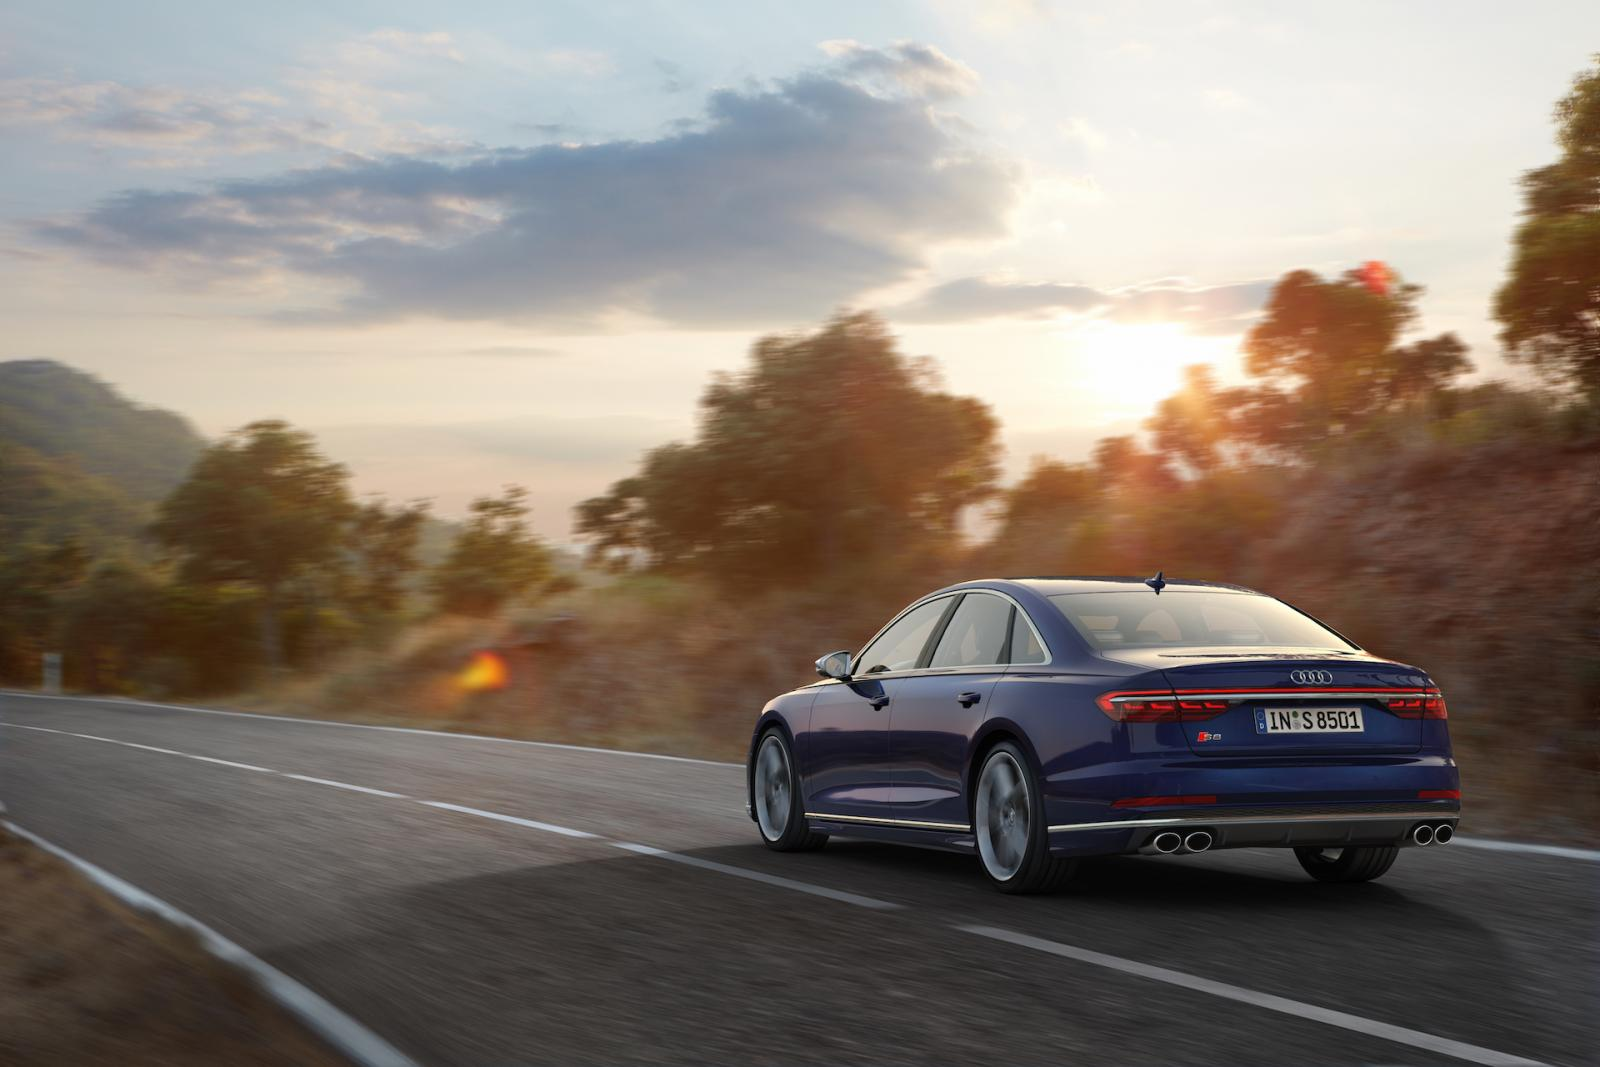 Nya Audi S8 officiell